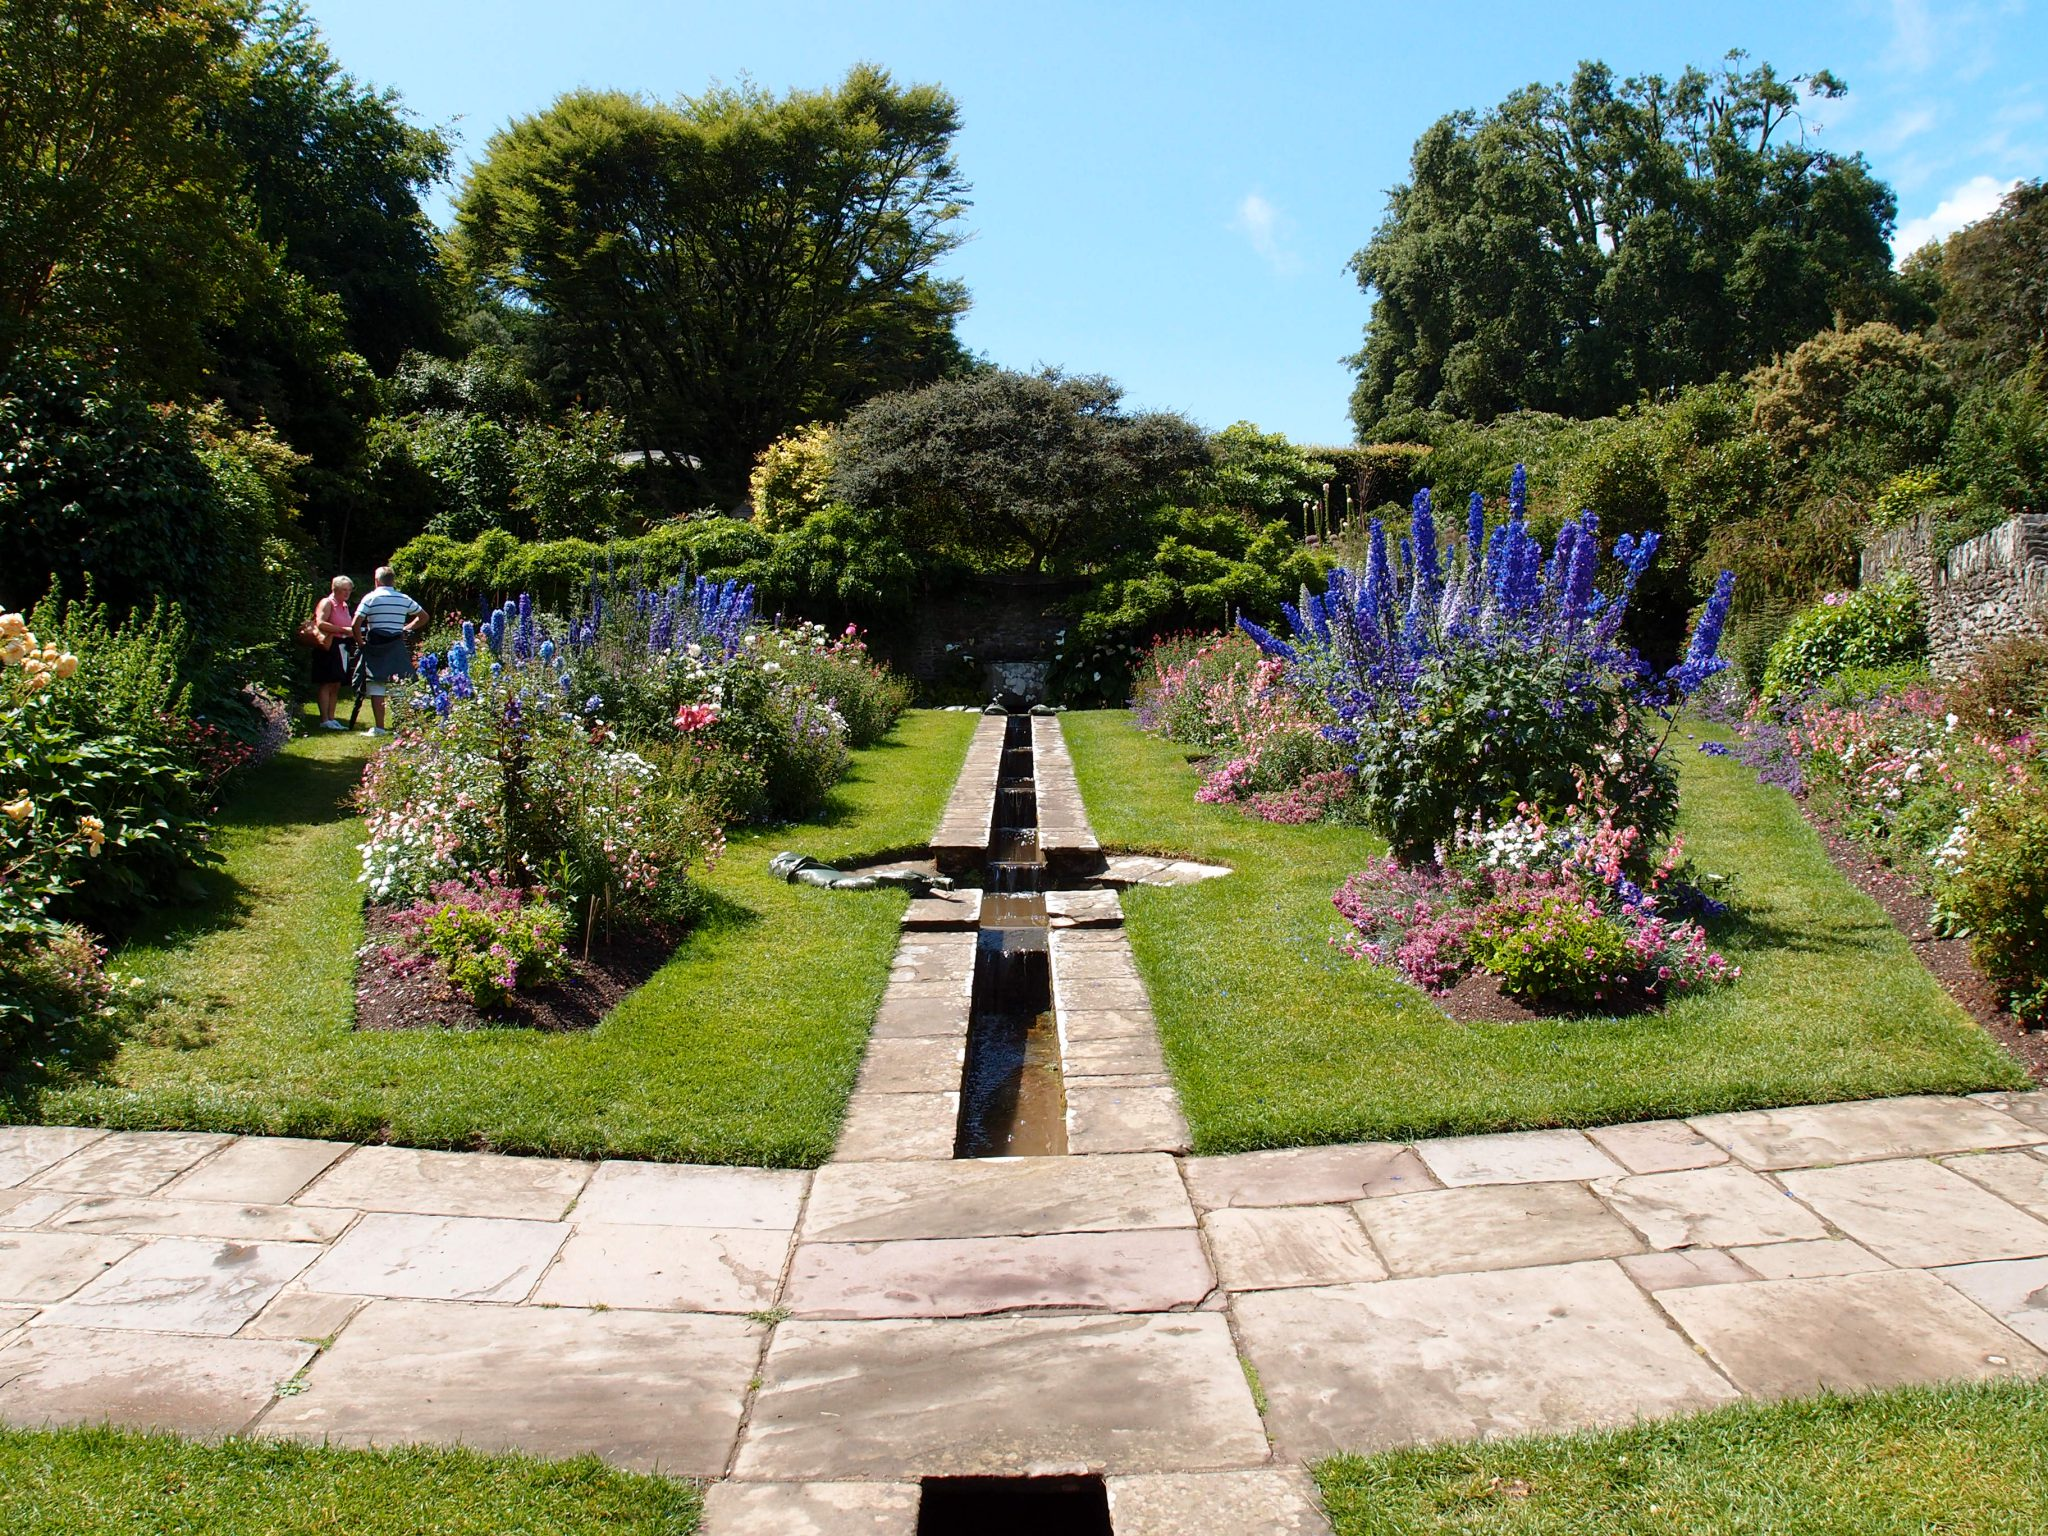 After the deluge: The Glorious Rill Garden